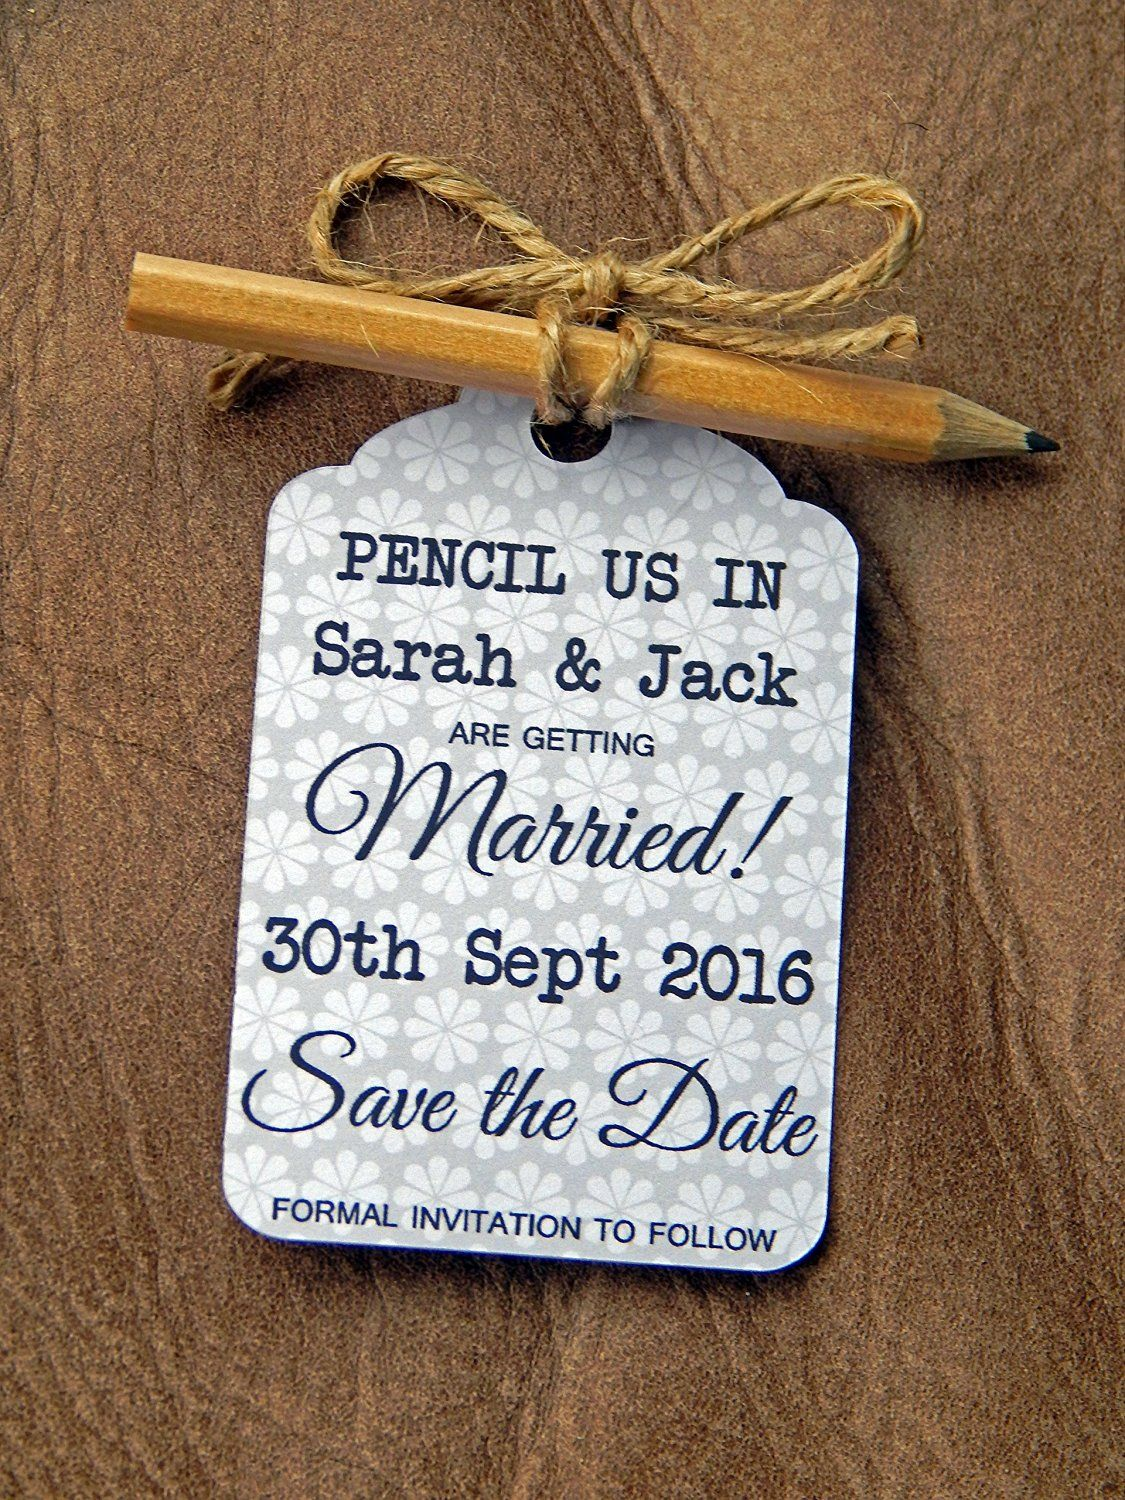 10 pencil us in save the date getting married wedding reminder cards 10 pencil us in save the date getting married wedding reminder cards with envelopes grey personalised with the stopboris Image collections